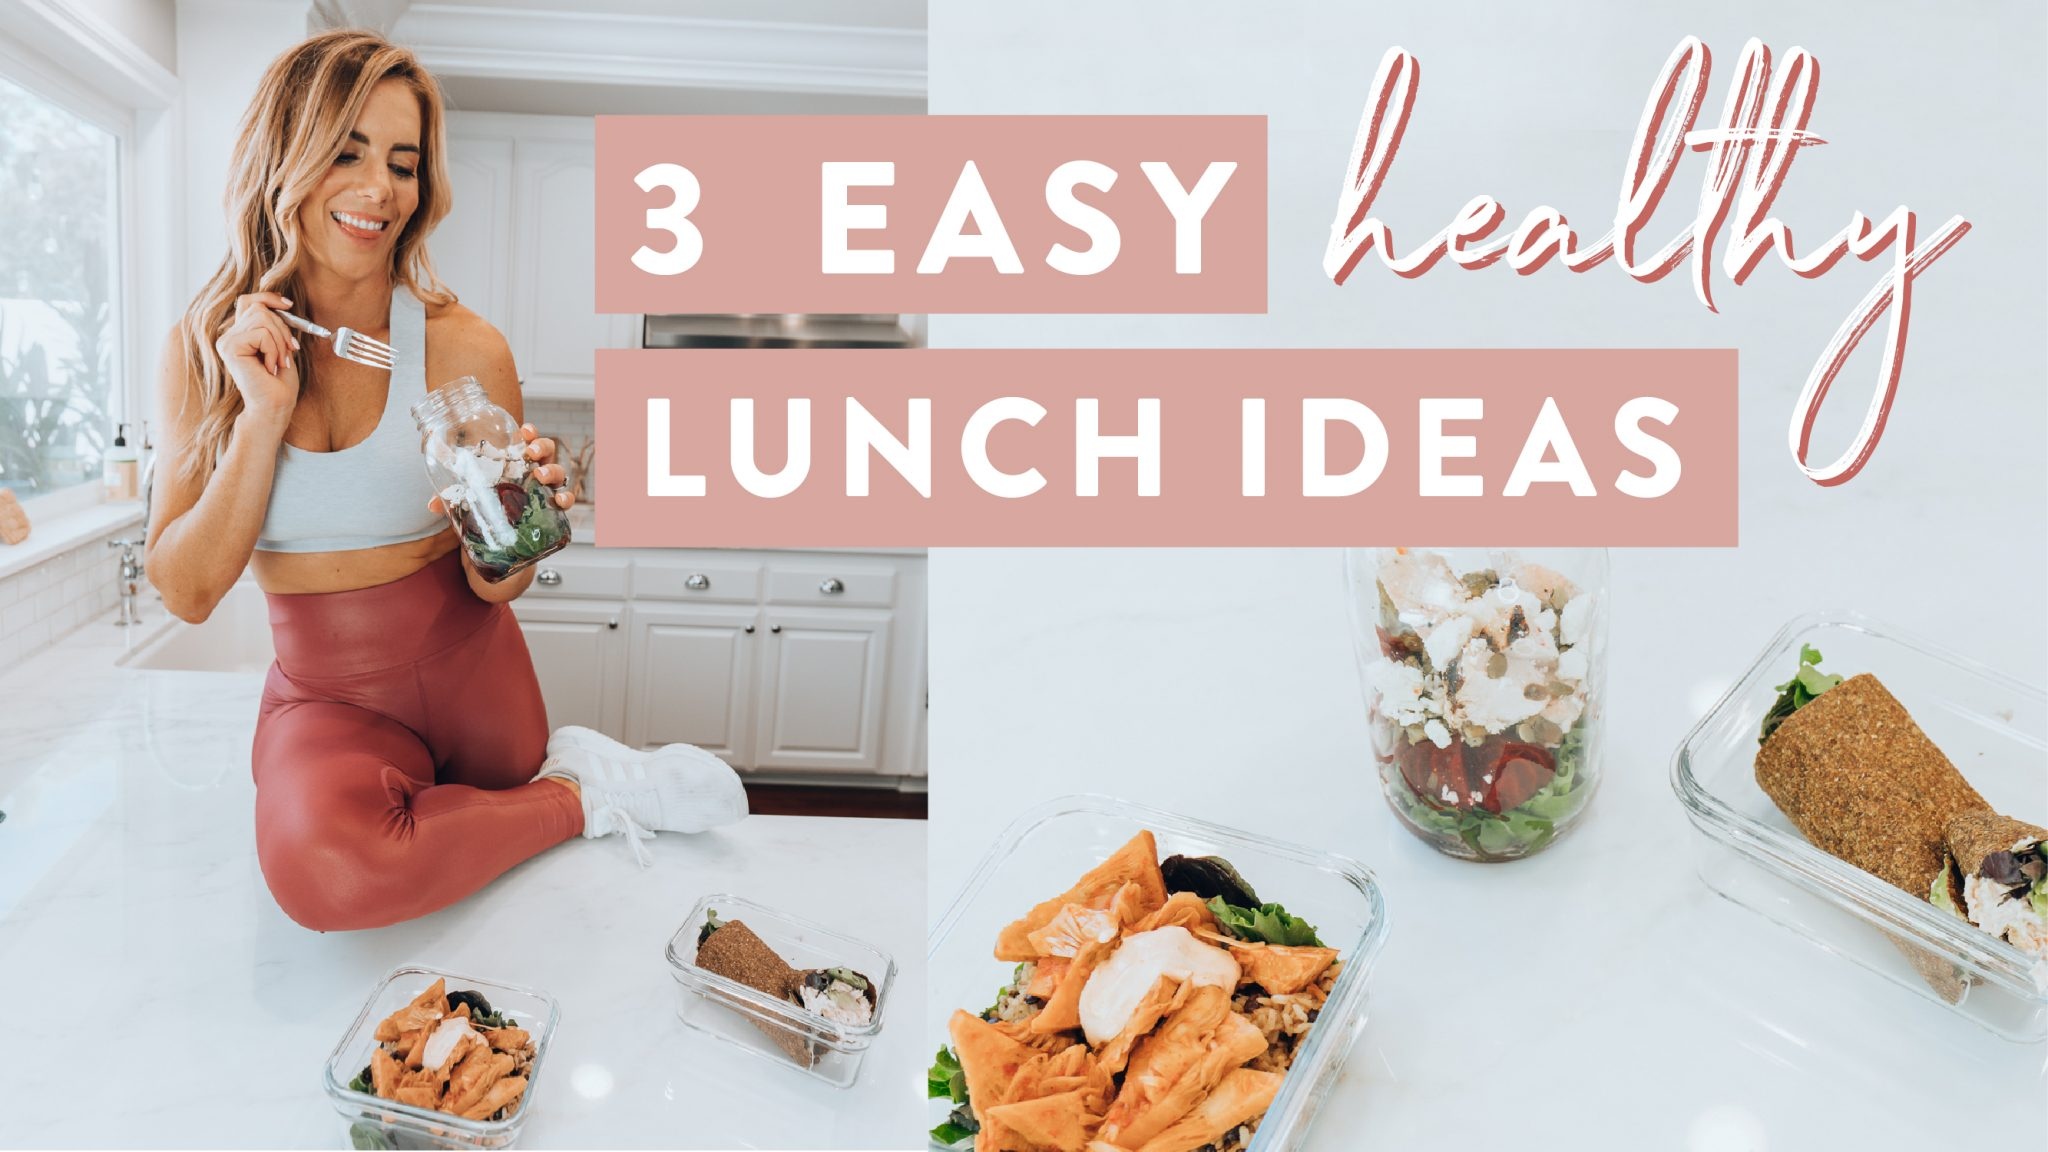 weekly workout what i eat in a day, 3 healthy lunch ideas for school and work photo for new video